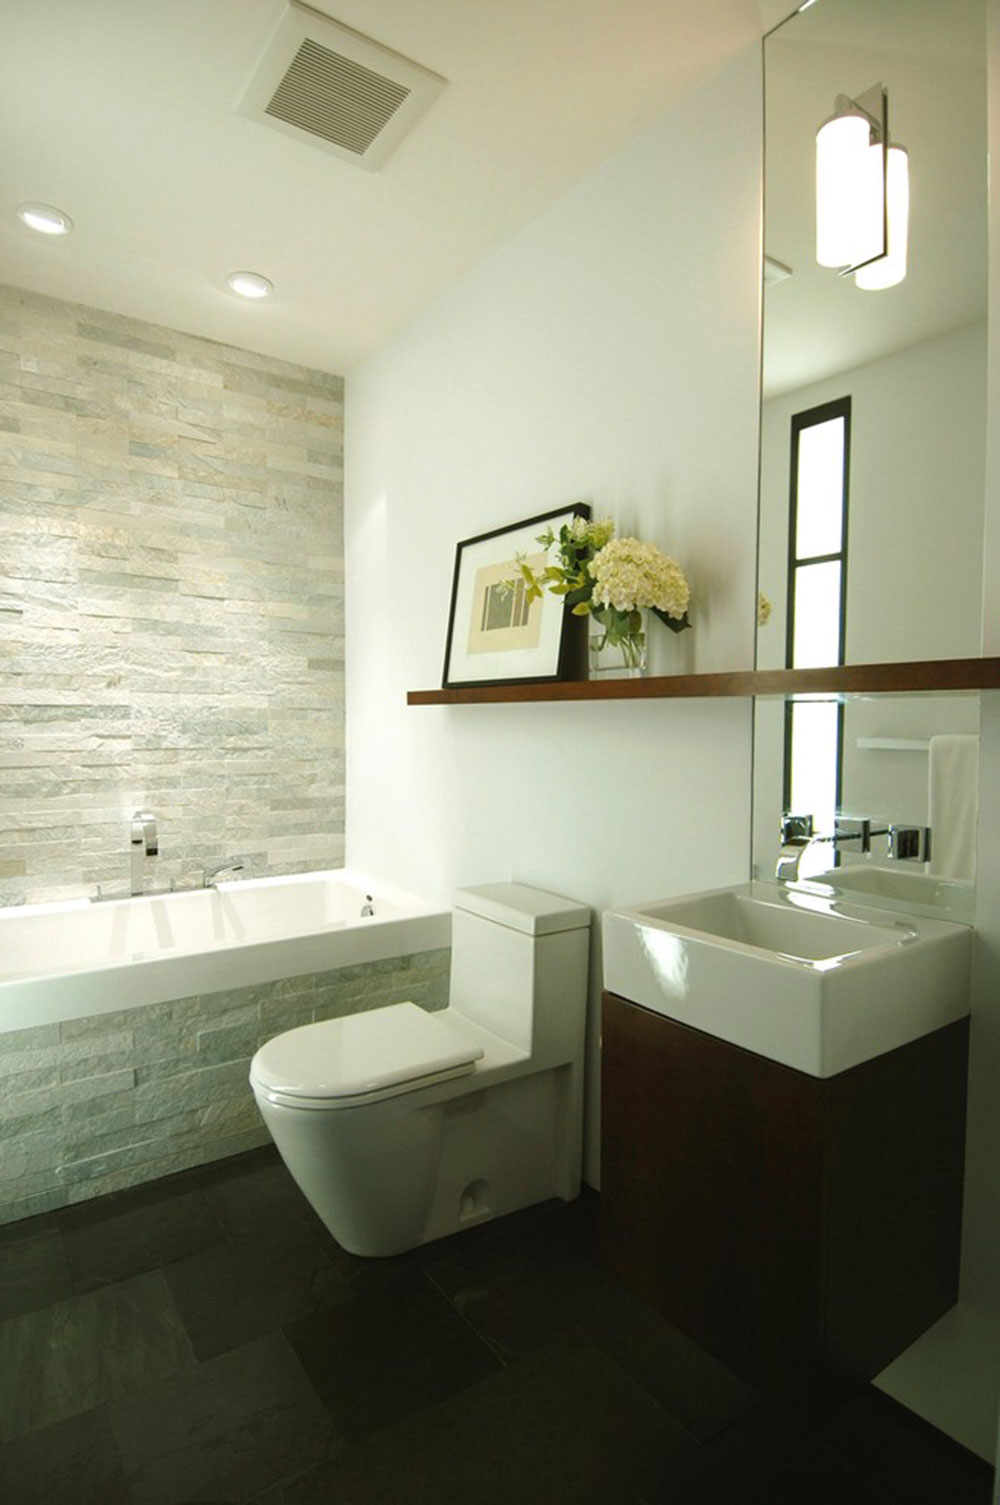 Styling your bathroom should be a priority12 Designing style should be a priority